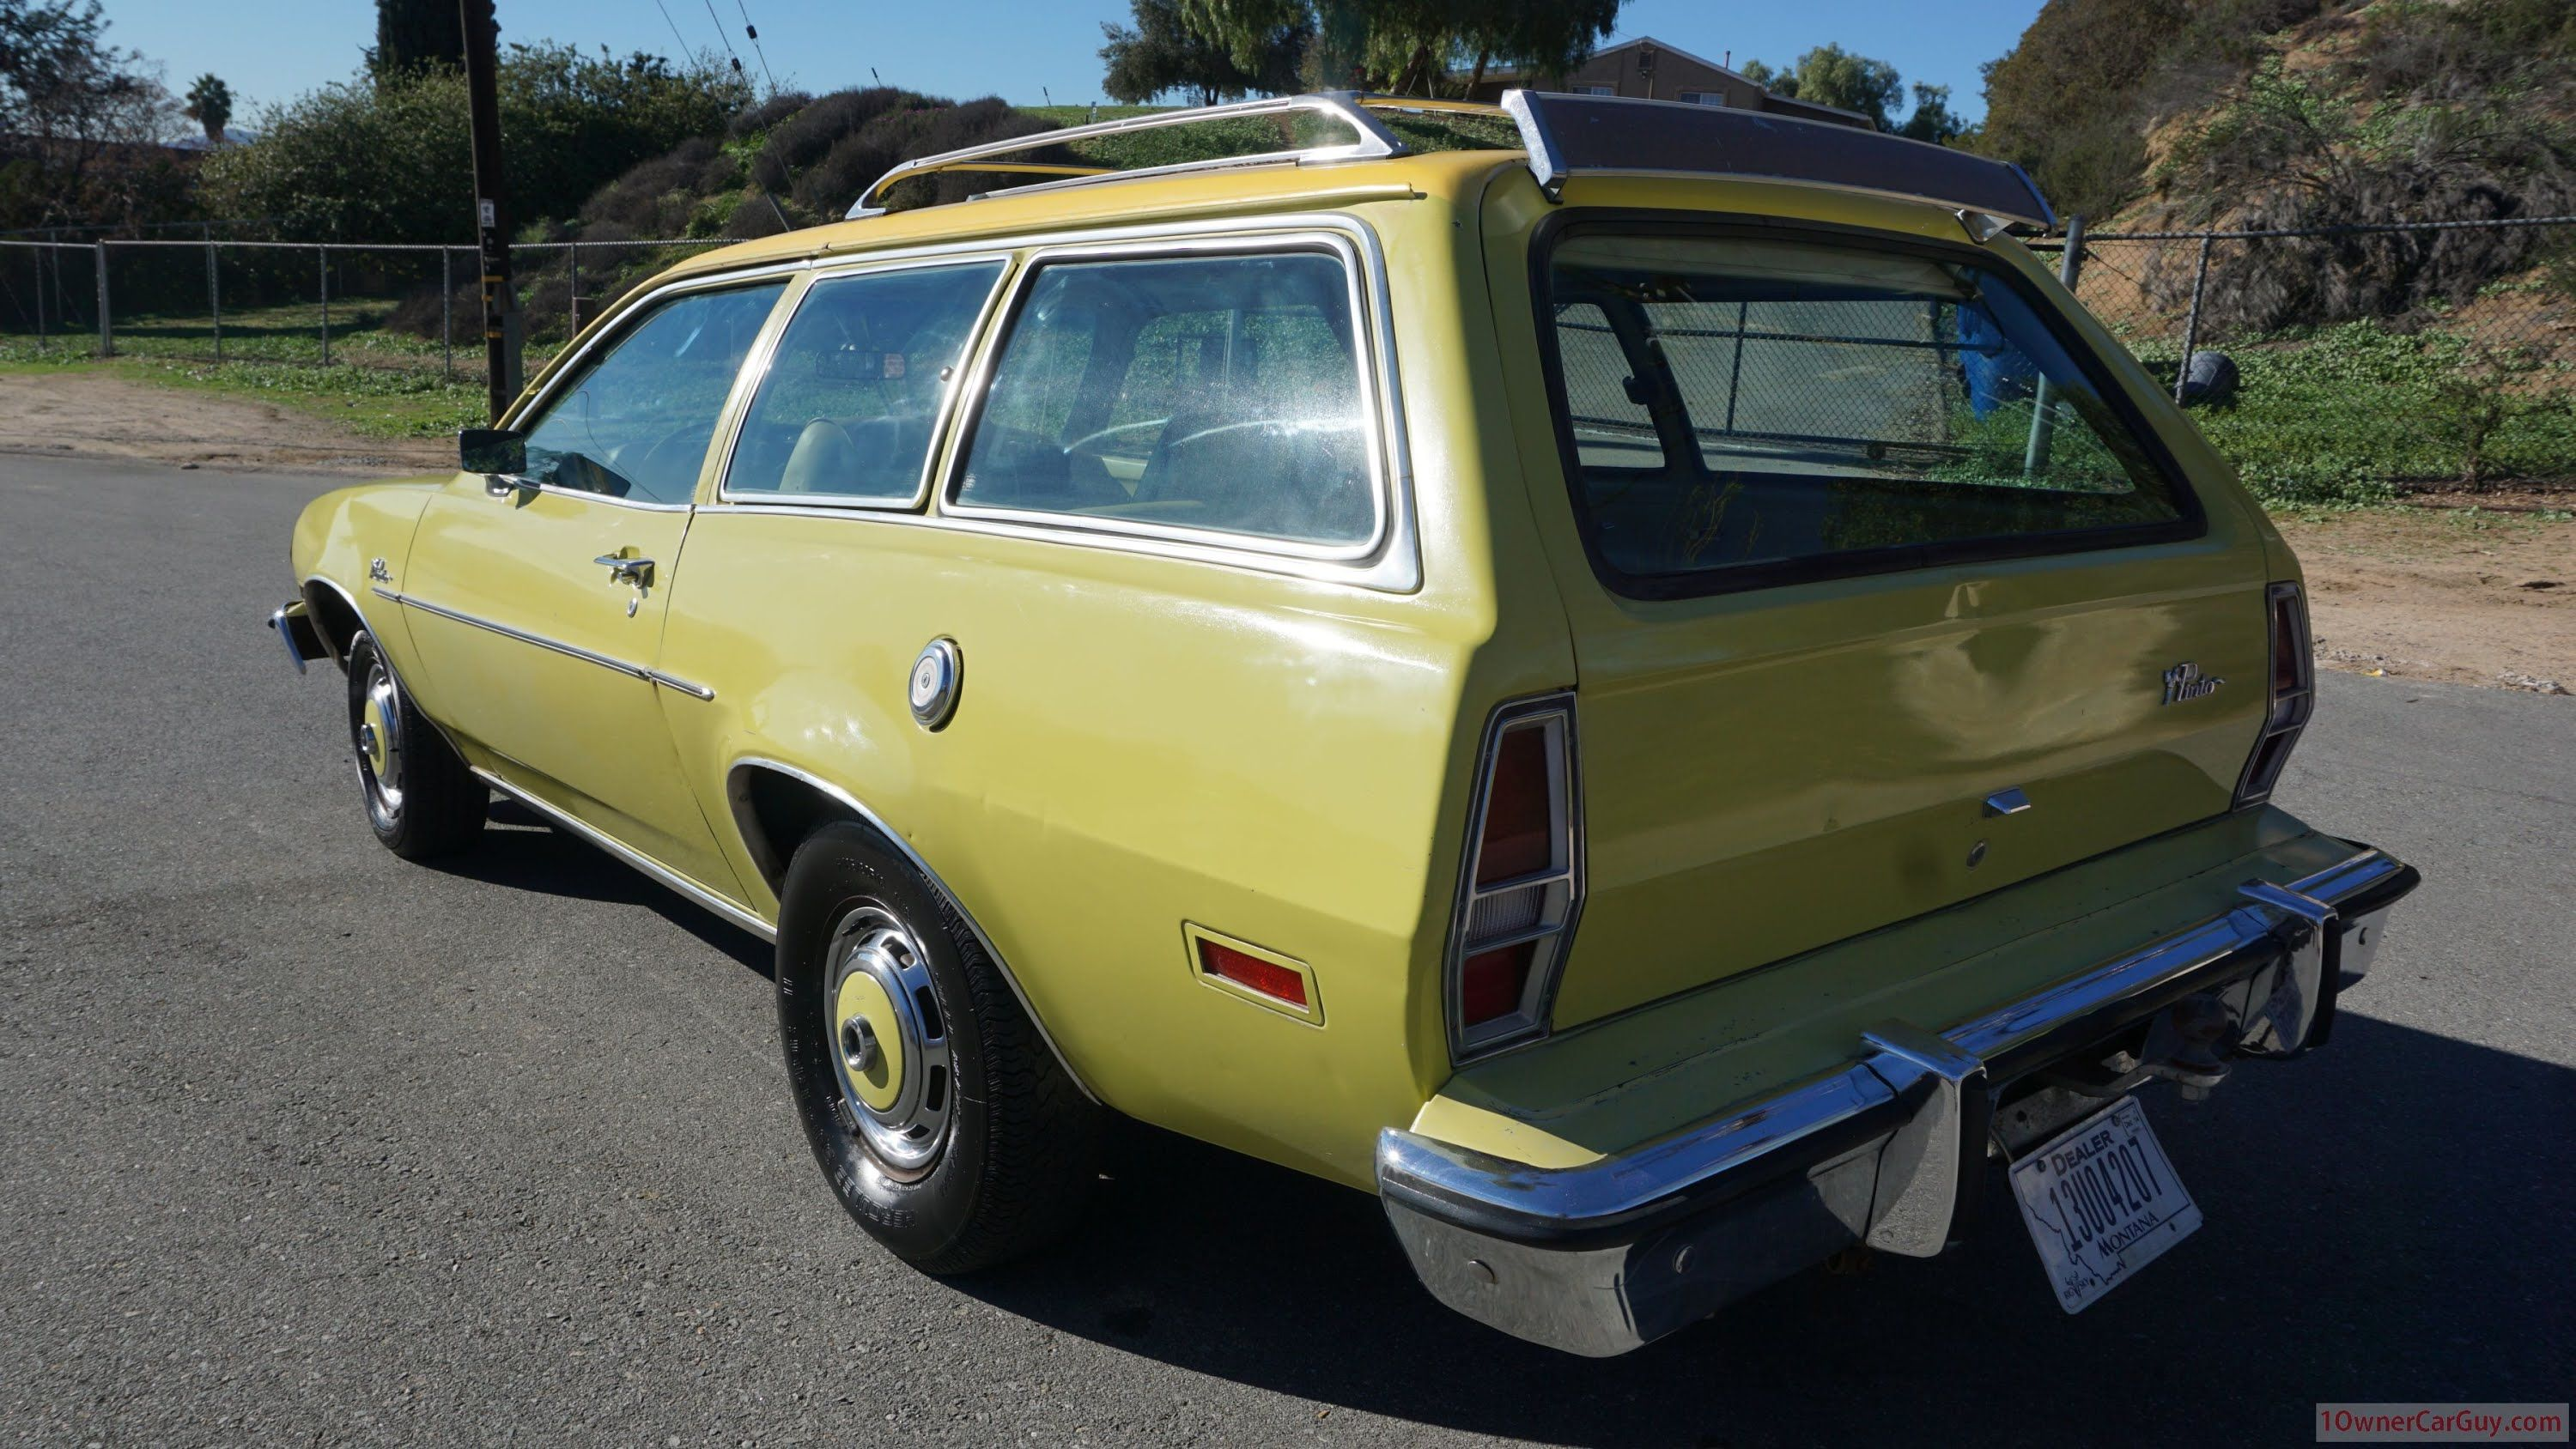 Ford Pinto Pony Review 2 Door Station Wagon Runabout Classic Car ...